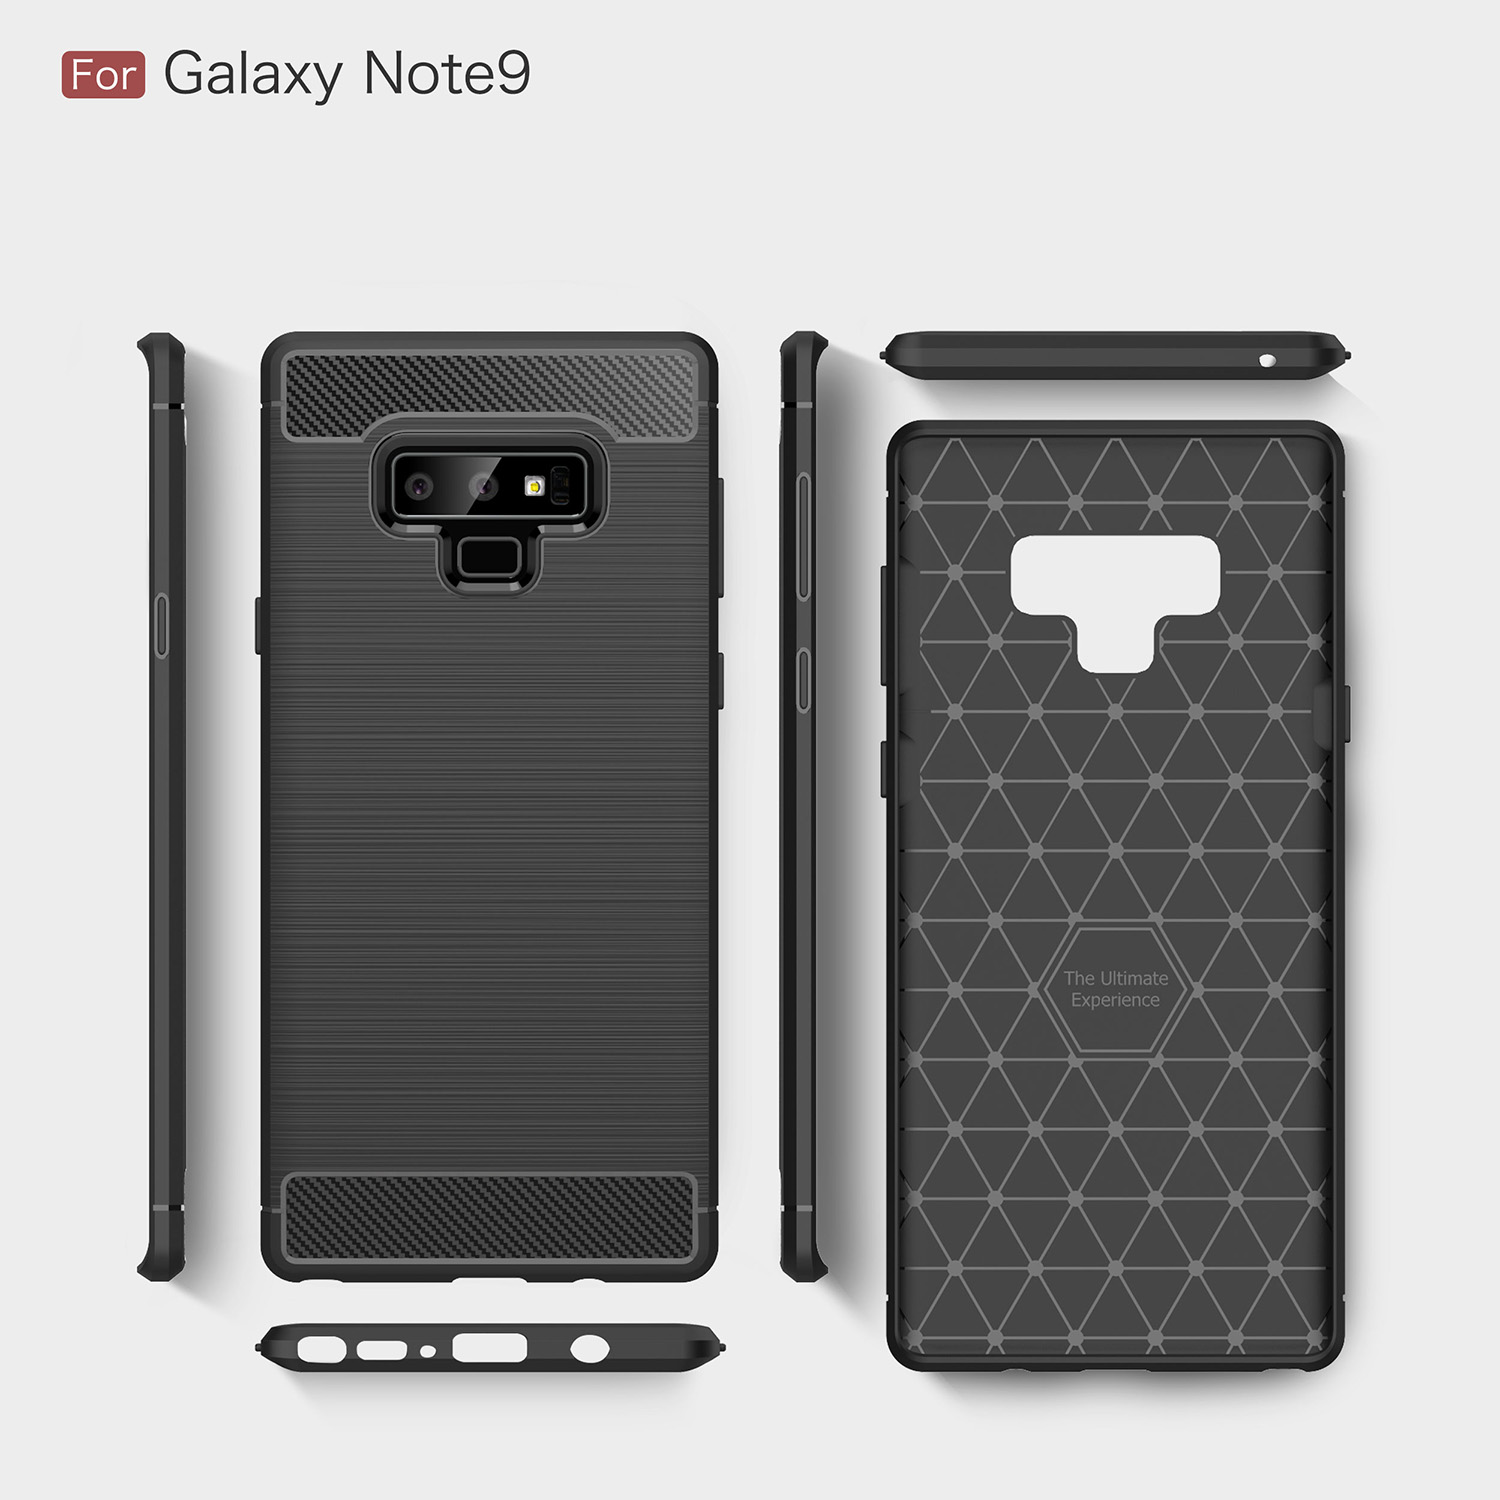 Business Carbon Fiber Case For Samsung Galaxy S10 E/Plus A8S A750 S9 S8 A9S A6 J4 J6 Plus J8 2018 Note9 8 Soft Silicone Cover